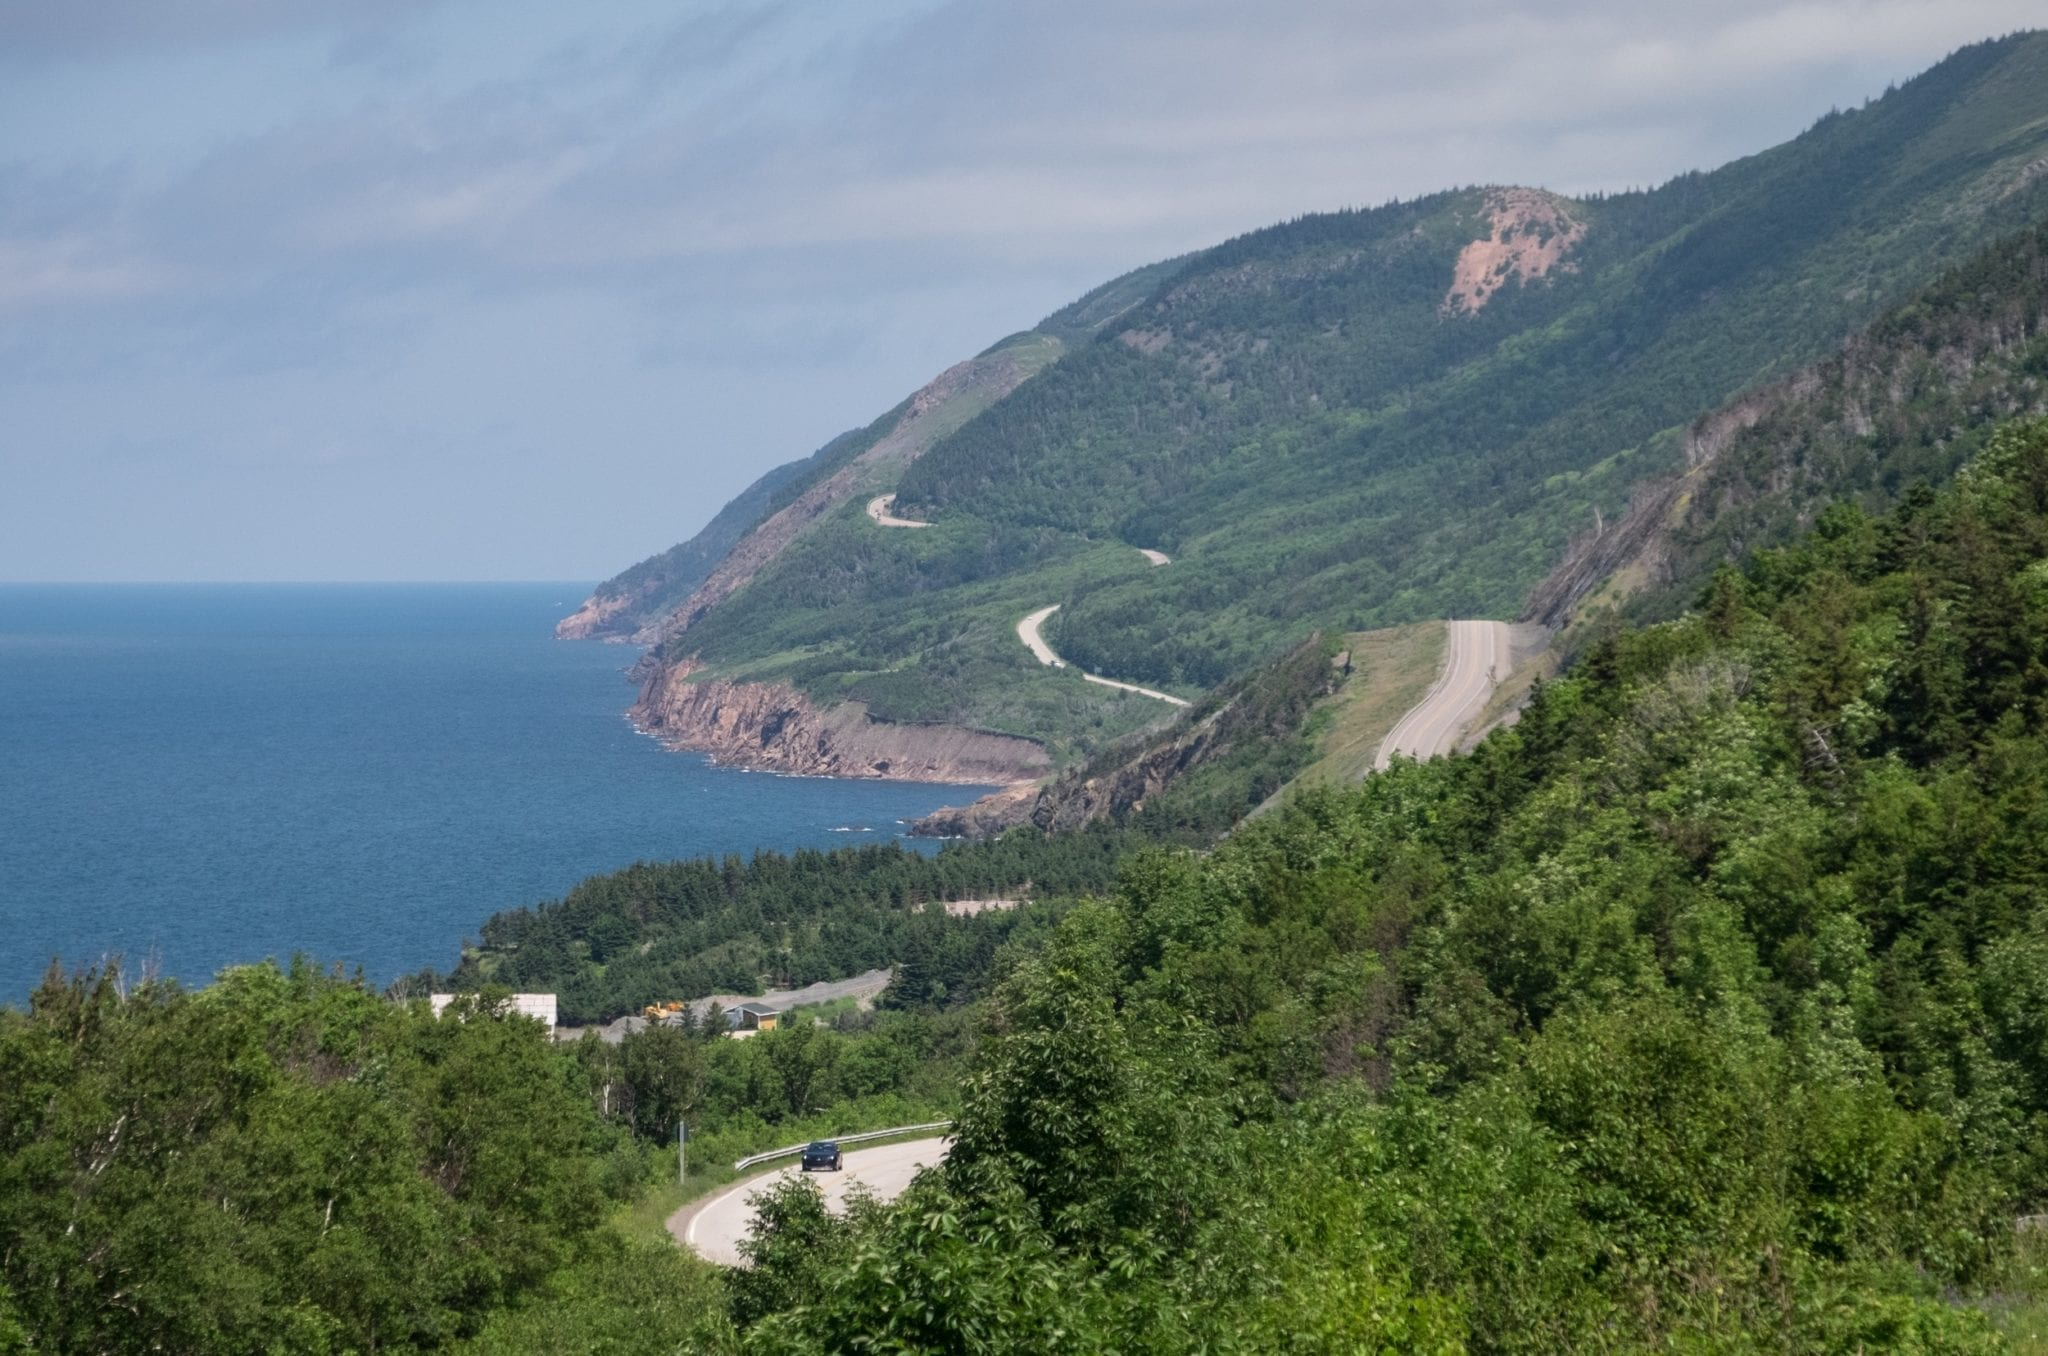 The mountains and winding roads of Cape Breton Highlands National Park.